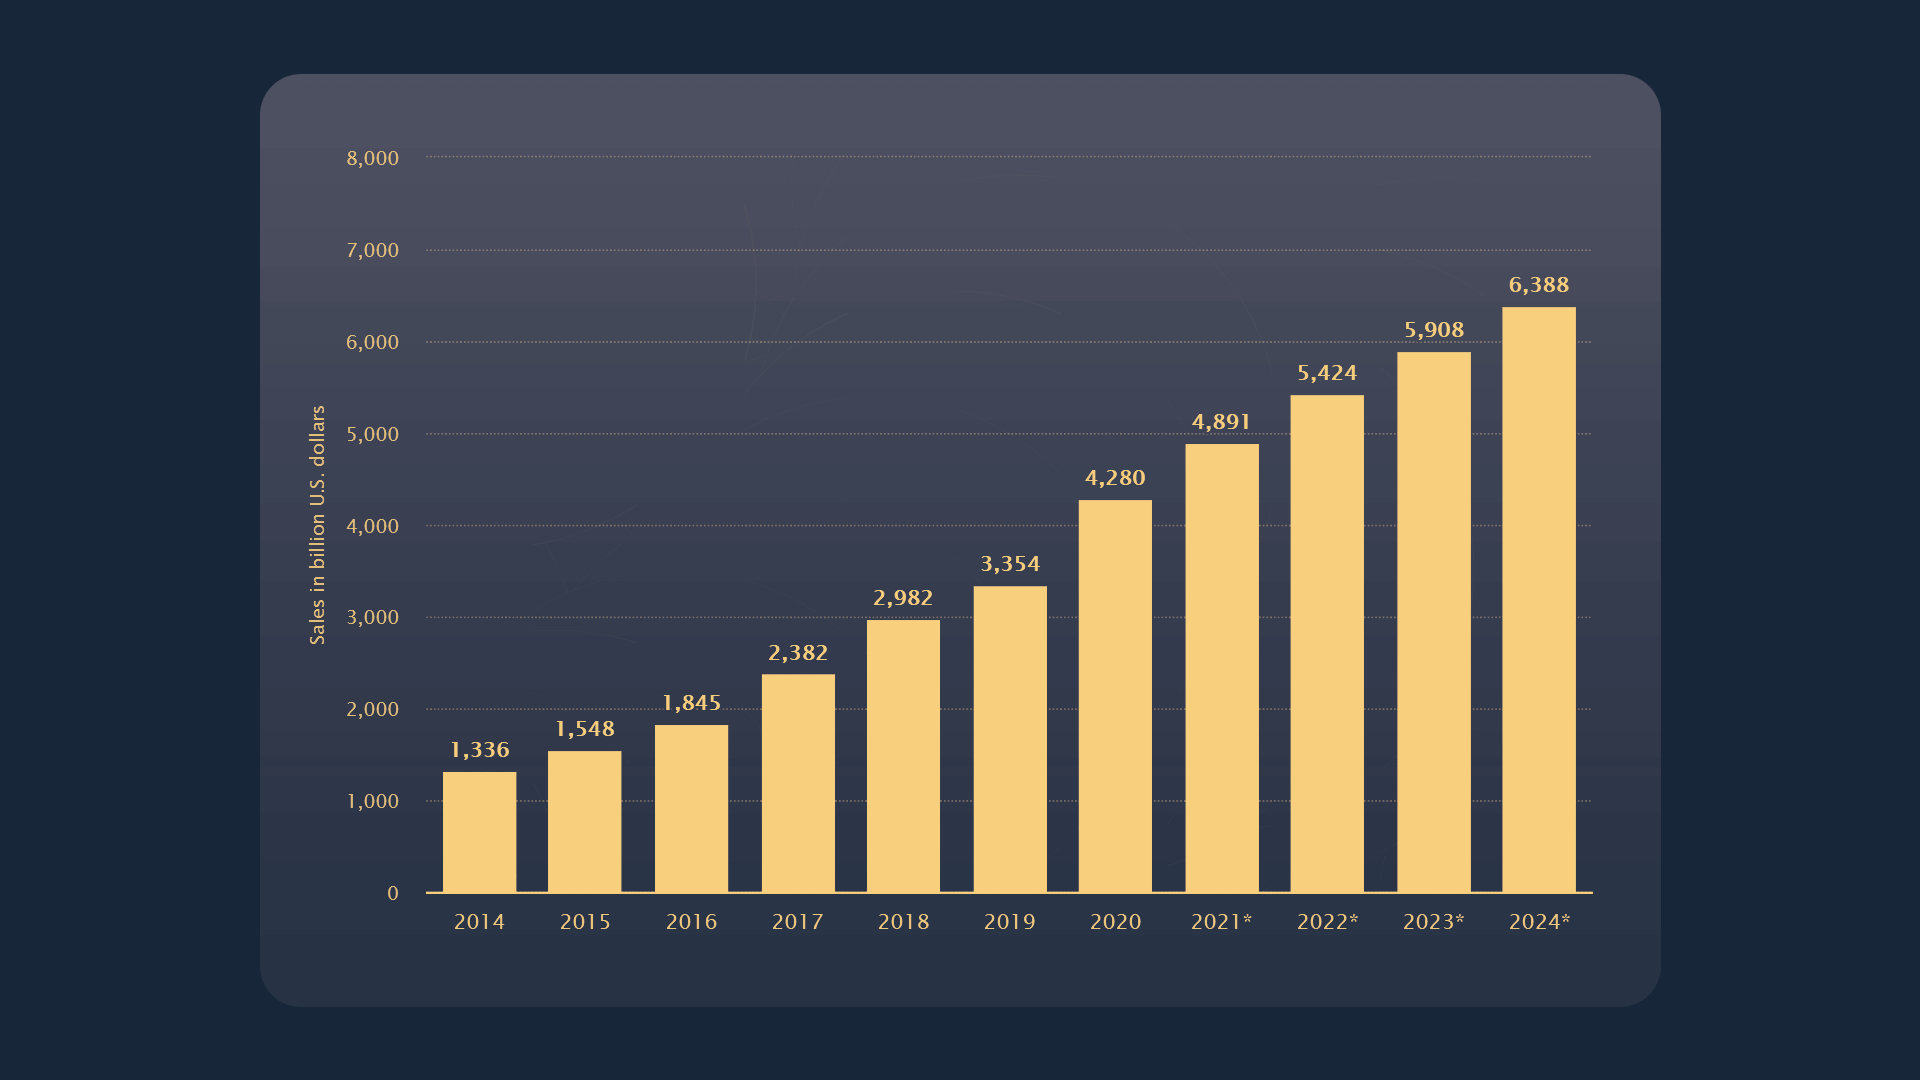 Bar graph showing a steady incline of e-commerce sales from a low of $1,336 billion in 2014 to a high of $6,388 billion projected in 2024.